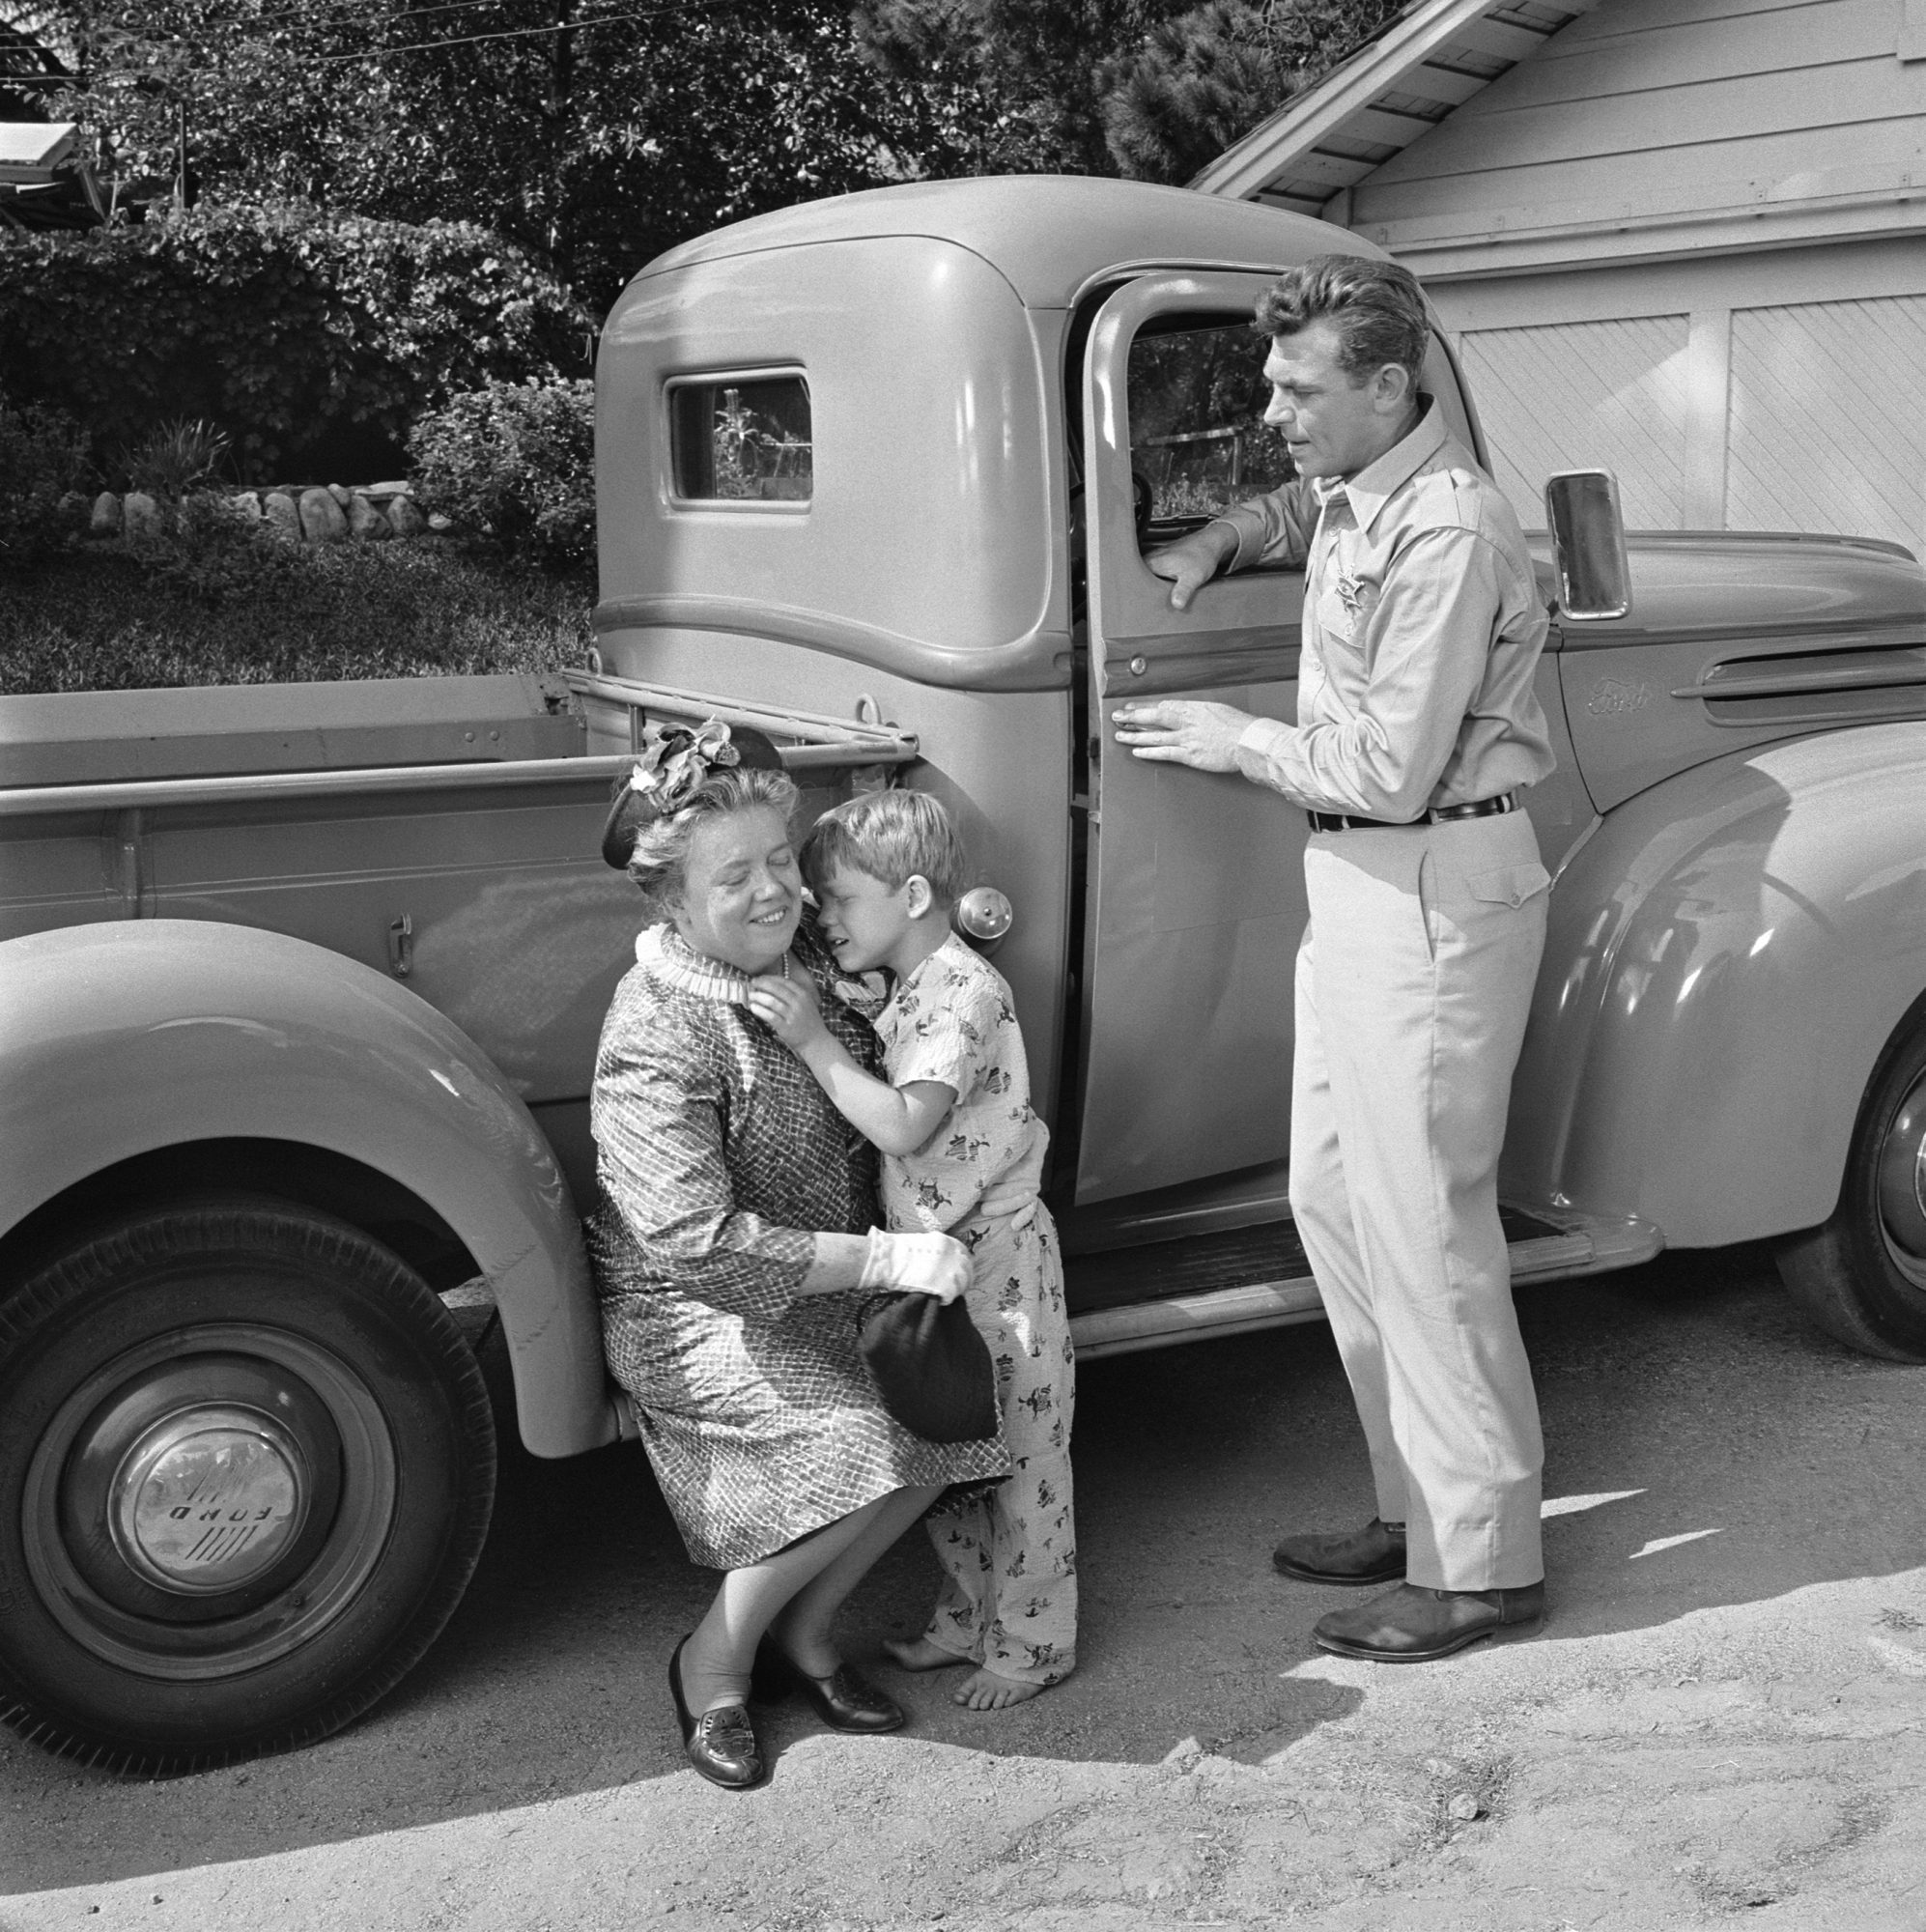 Aunt Bee, Opie, and Andy from The Andy Griffith Show